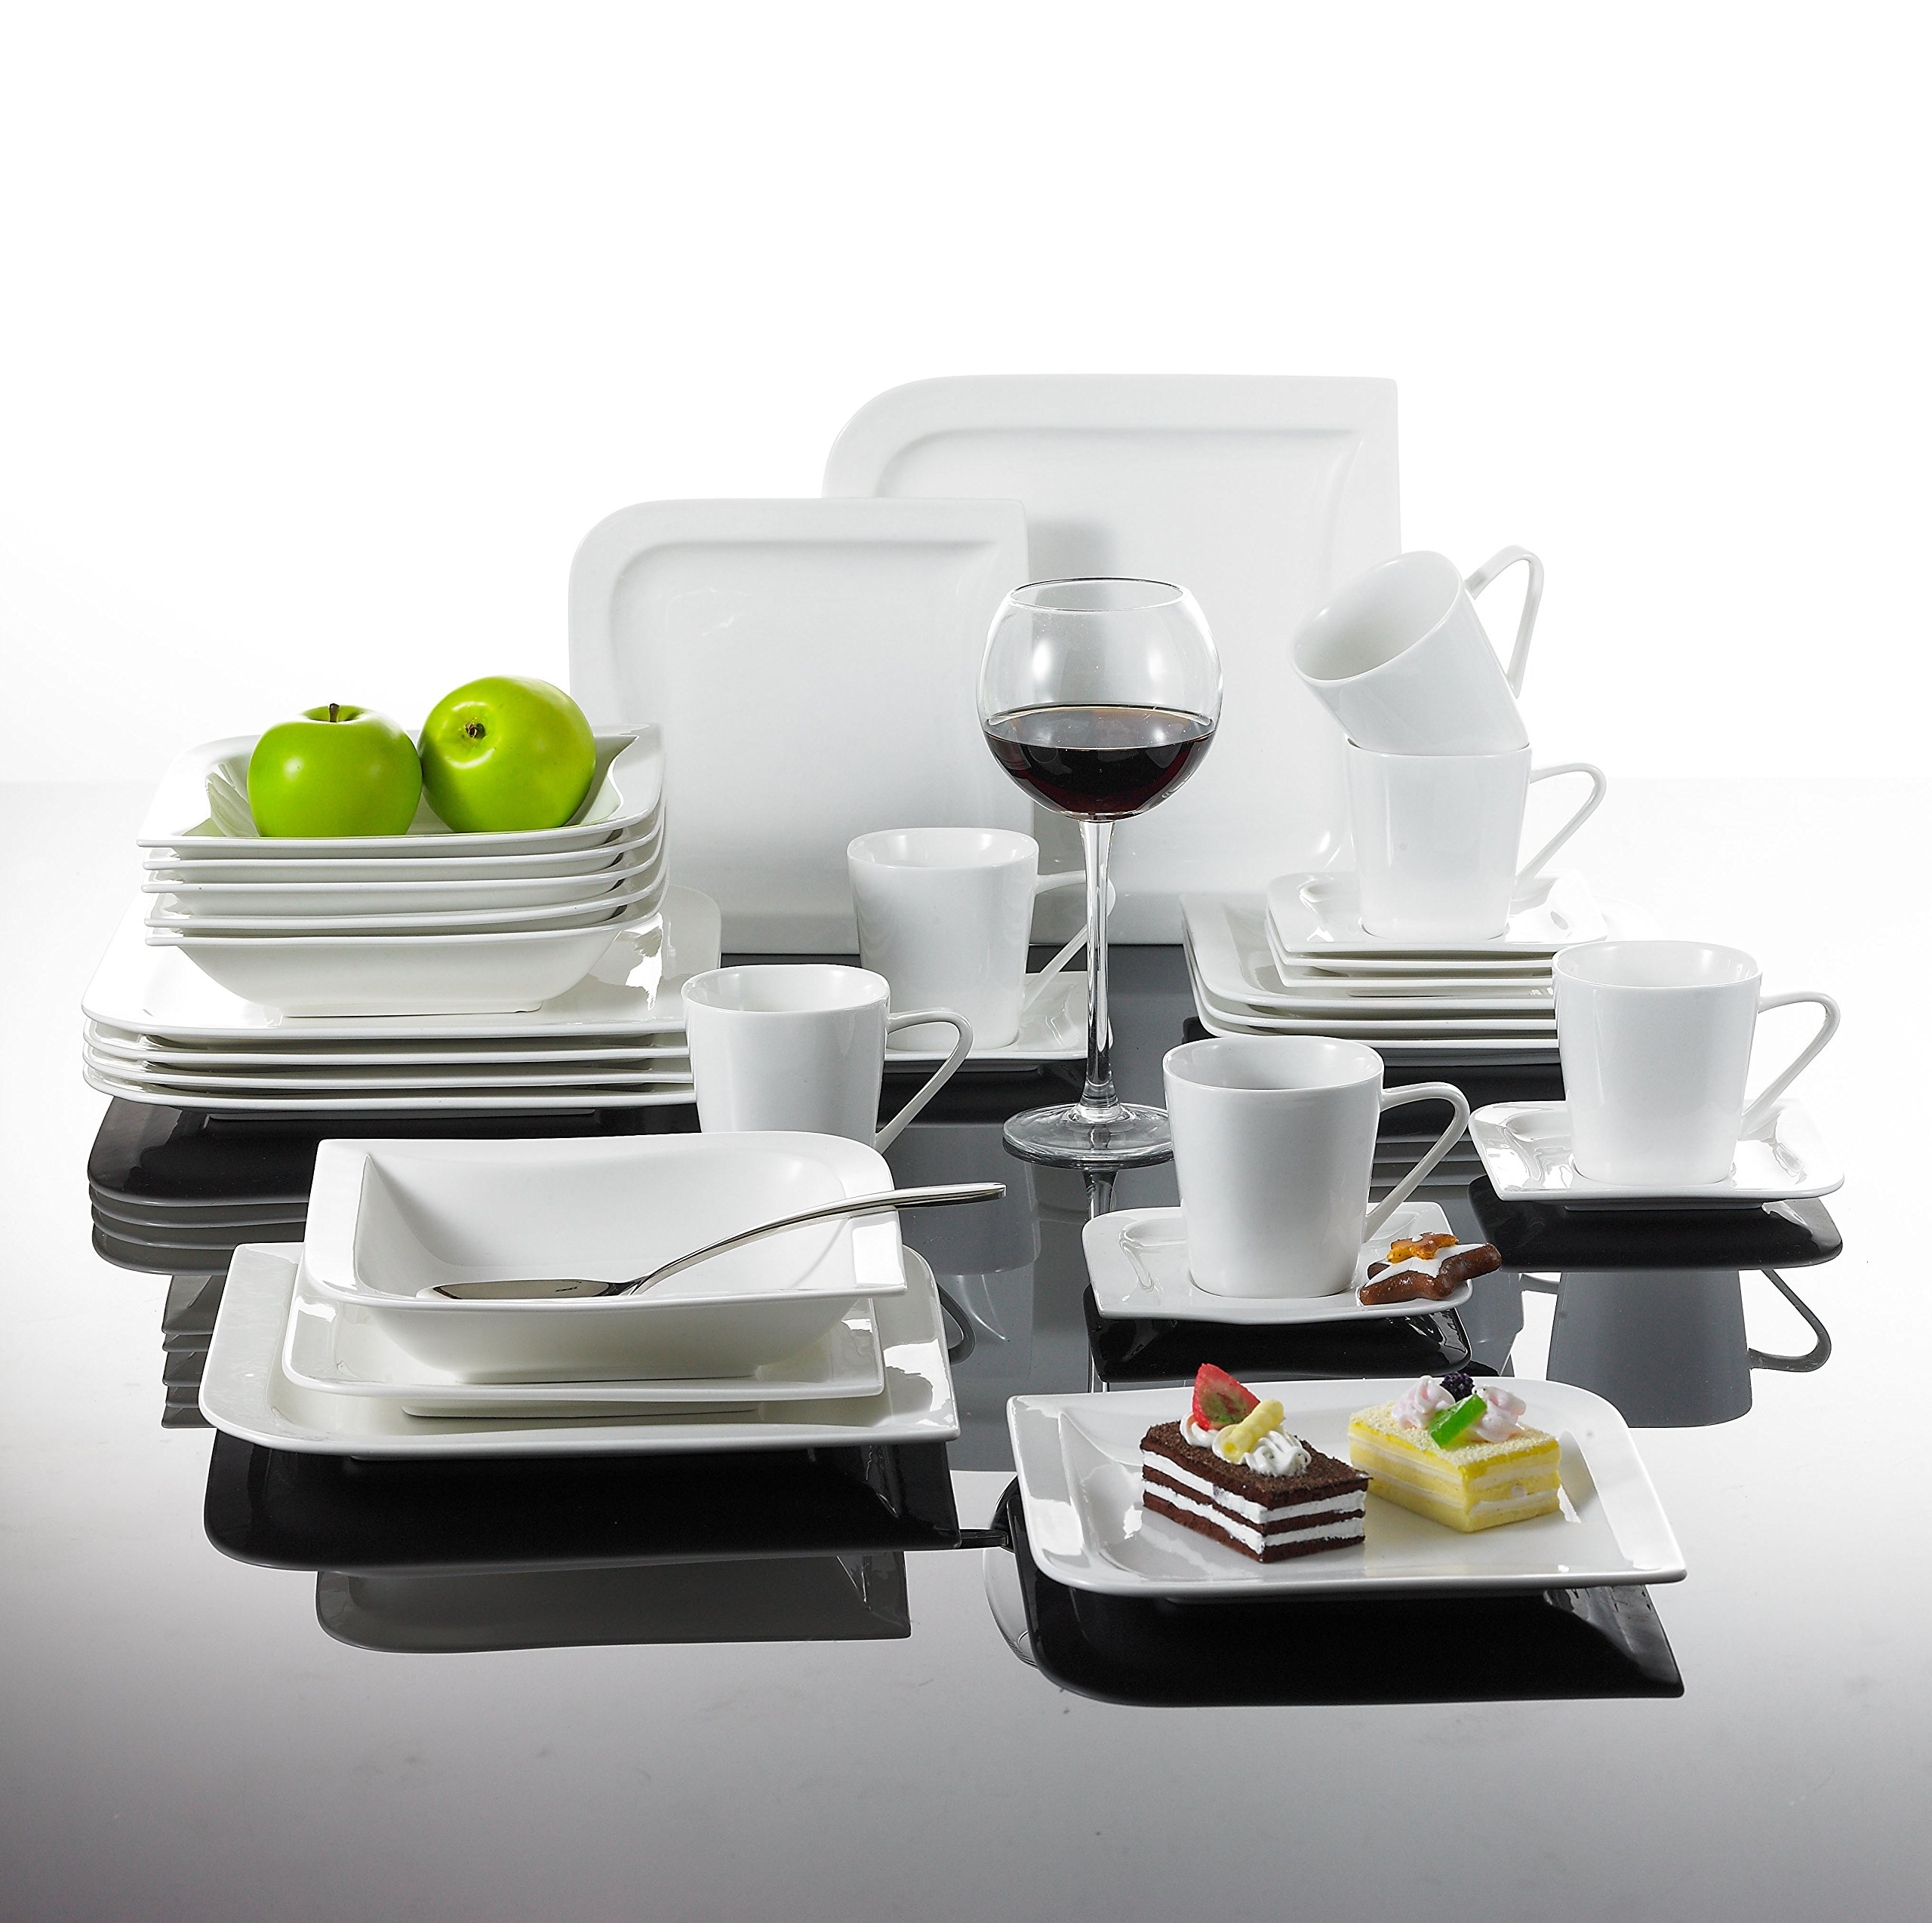 Malacasa, Series Joesfa, 36-Piece Ivory White Porcelain China Ceramic Dinnerware Sets of Cups, Saucers, Bowls and Plates Service for 6